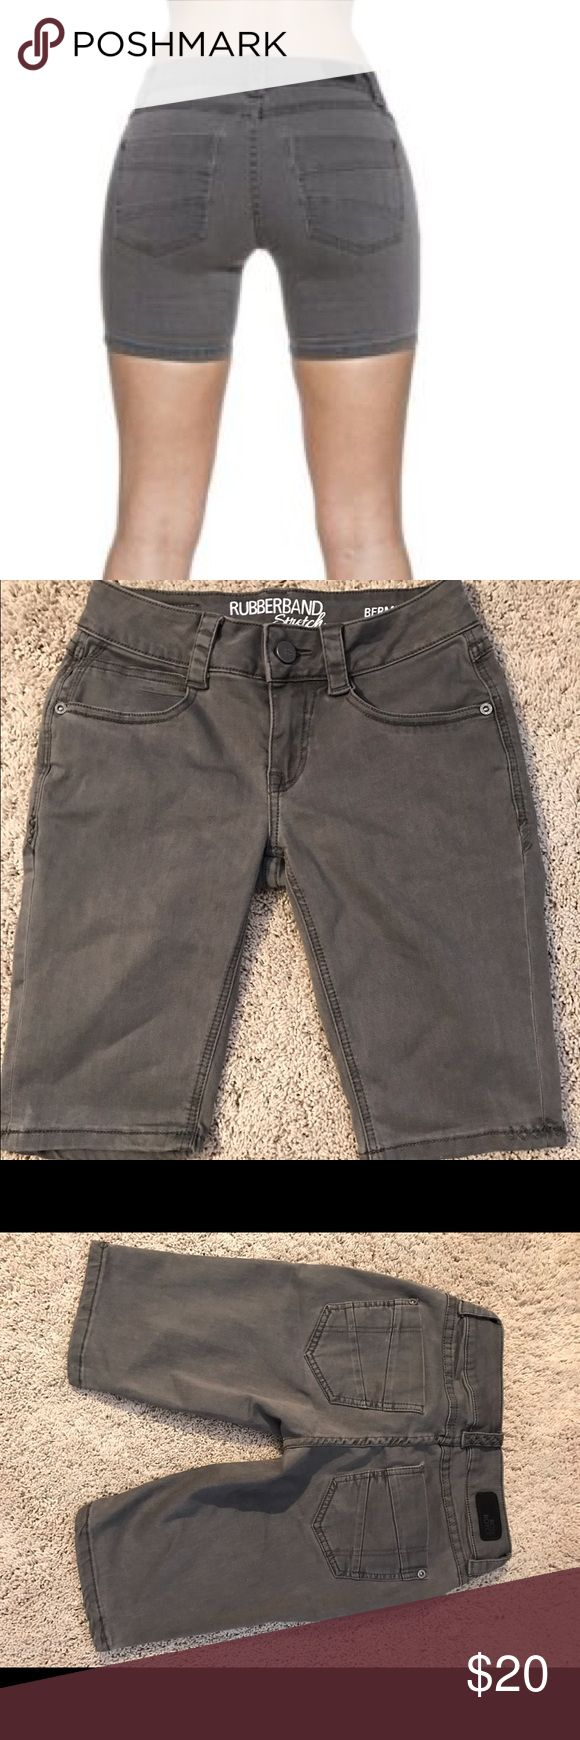 """Rose Royce Sarina Bermuda Short Rose Royce Rubberband Stretch Sarina Bermuda short in slate gray. Like new condition. Inseam 11"""". 65% cotton 33% poly 2% spandex. Comment with any questions or make an offer. Rose Royce Shorts Bermudas"""